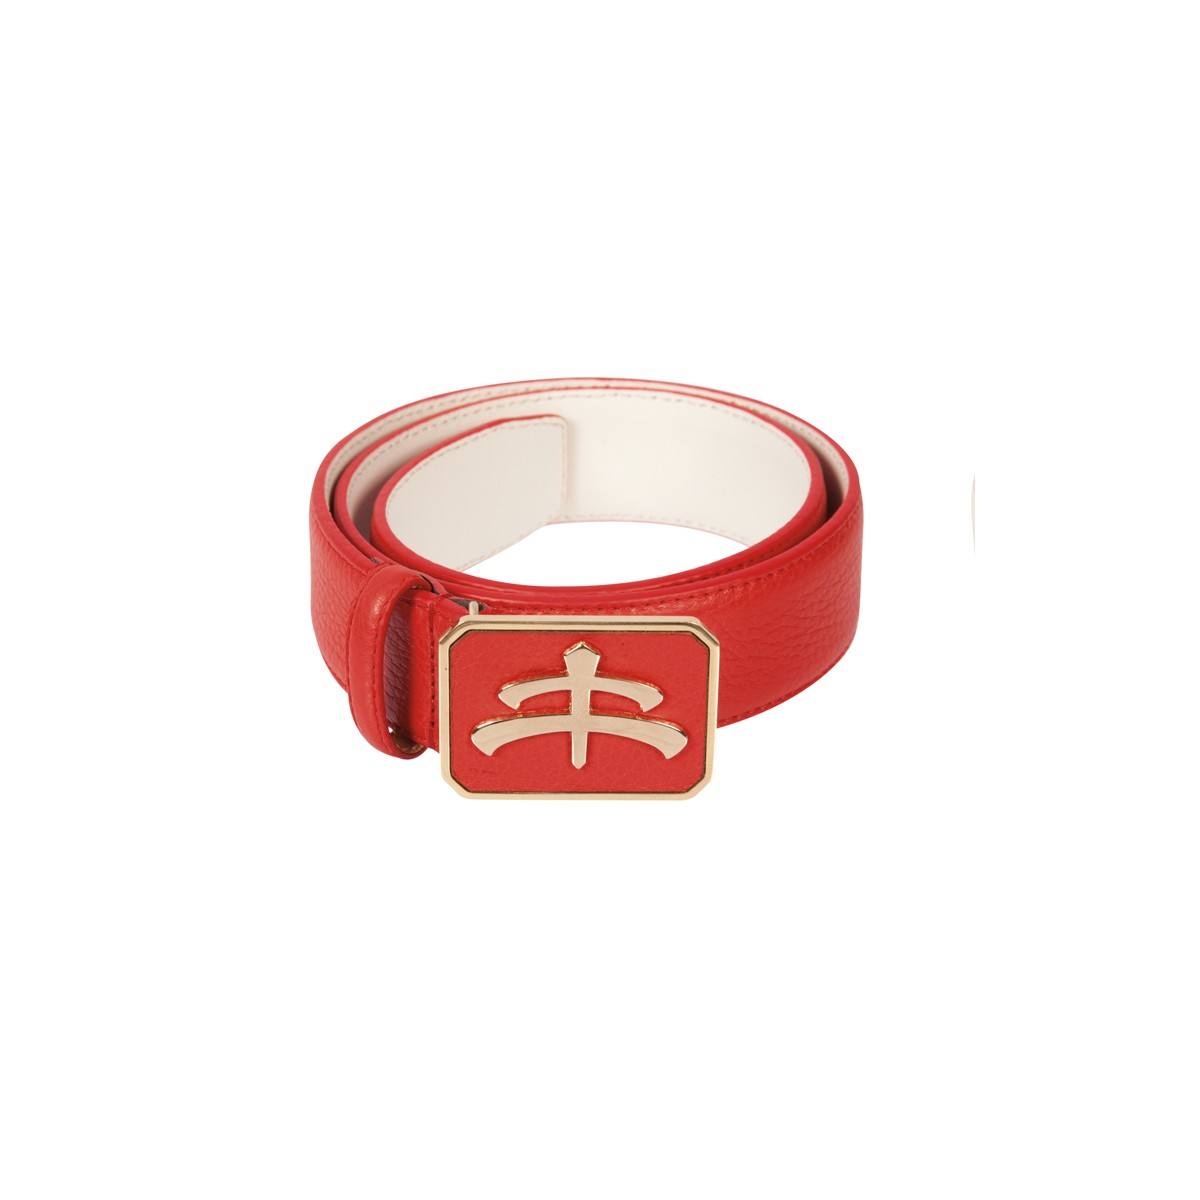 Leather and brass Belt | red